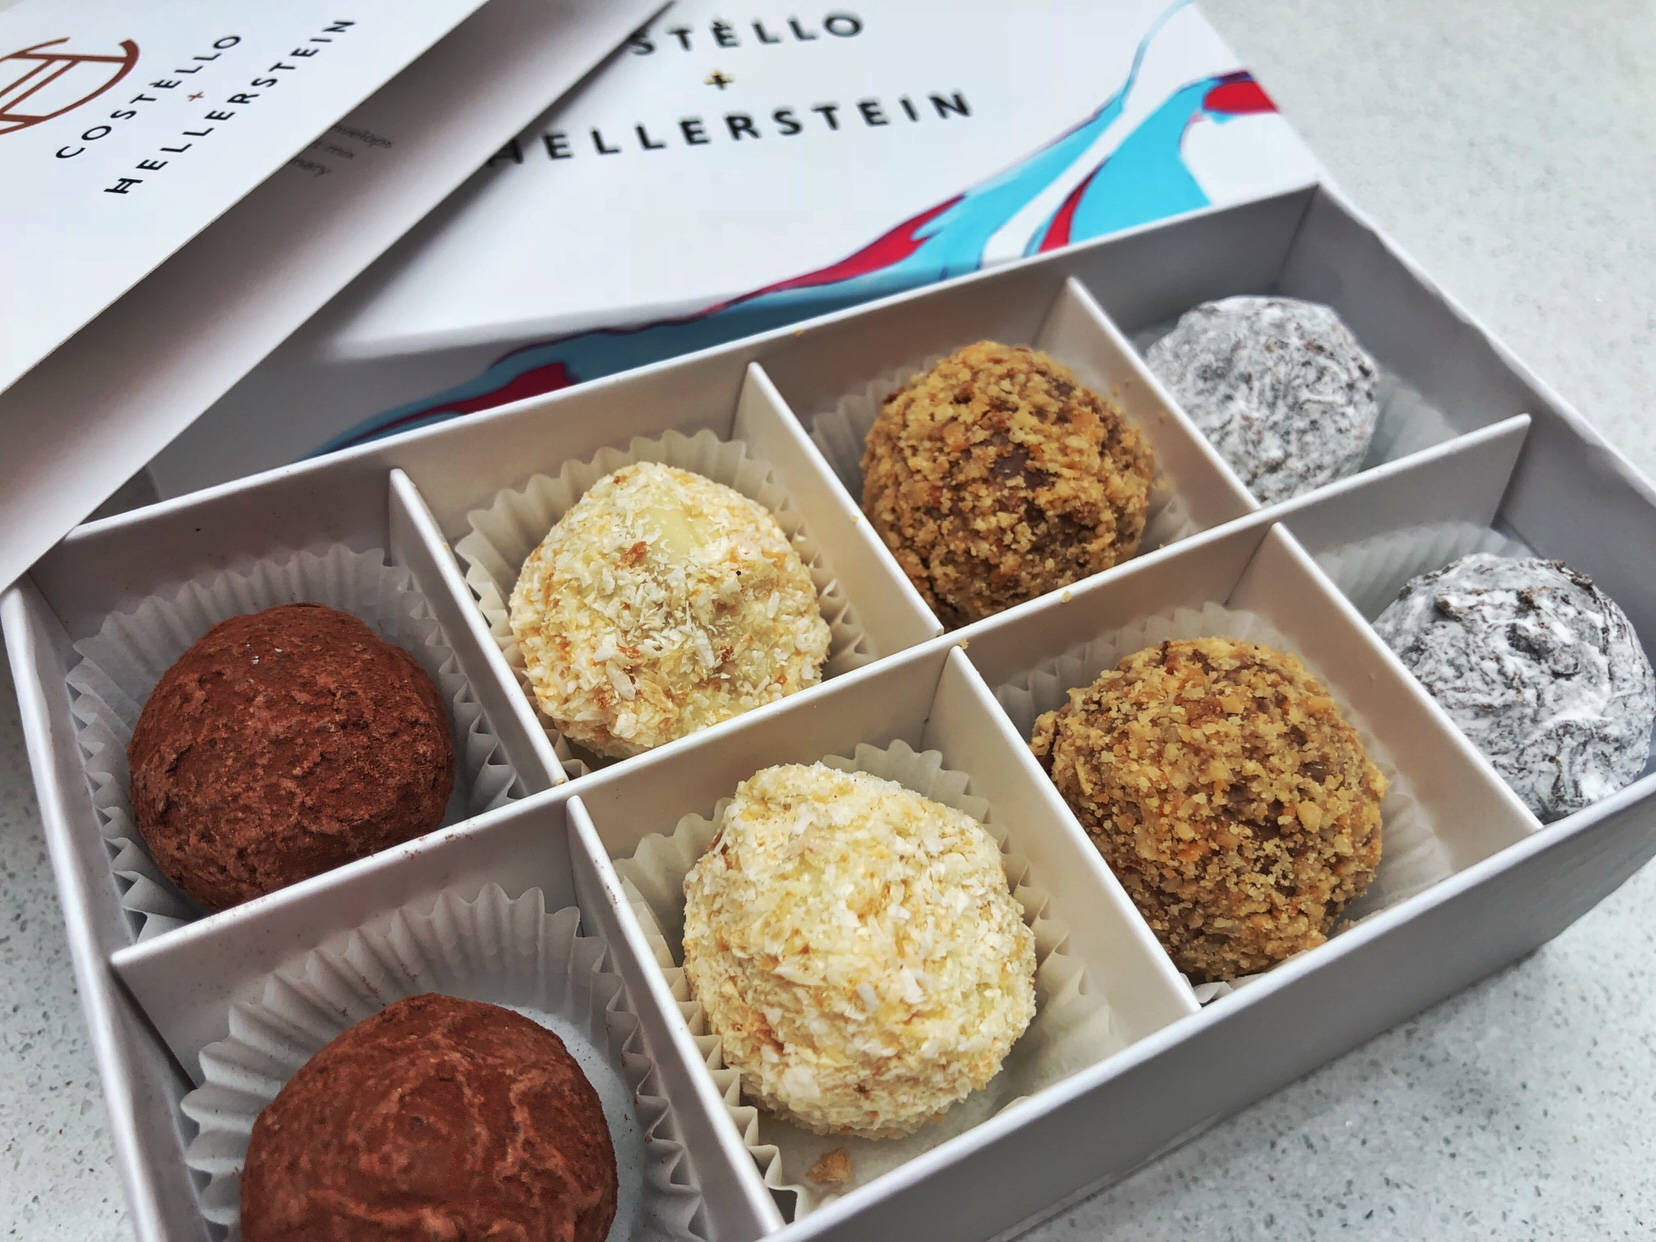 A photo of some delicious artisan truffles from Costello and Hellerstein who will be at the Maven Connex creative blogger morning in Cheltenham.